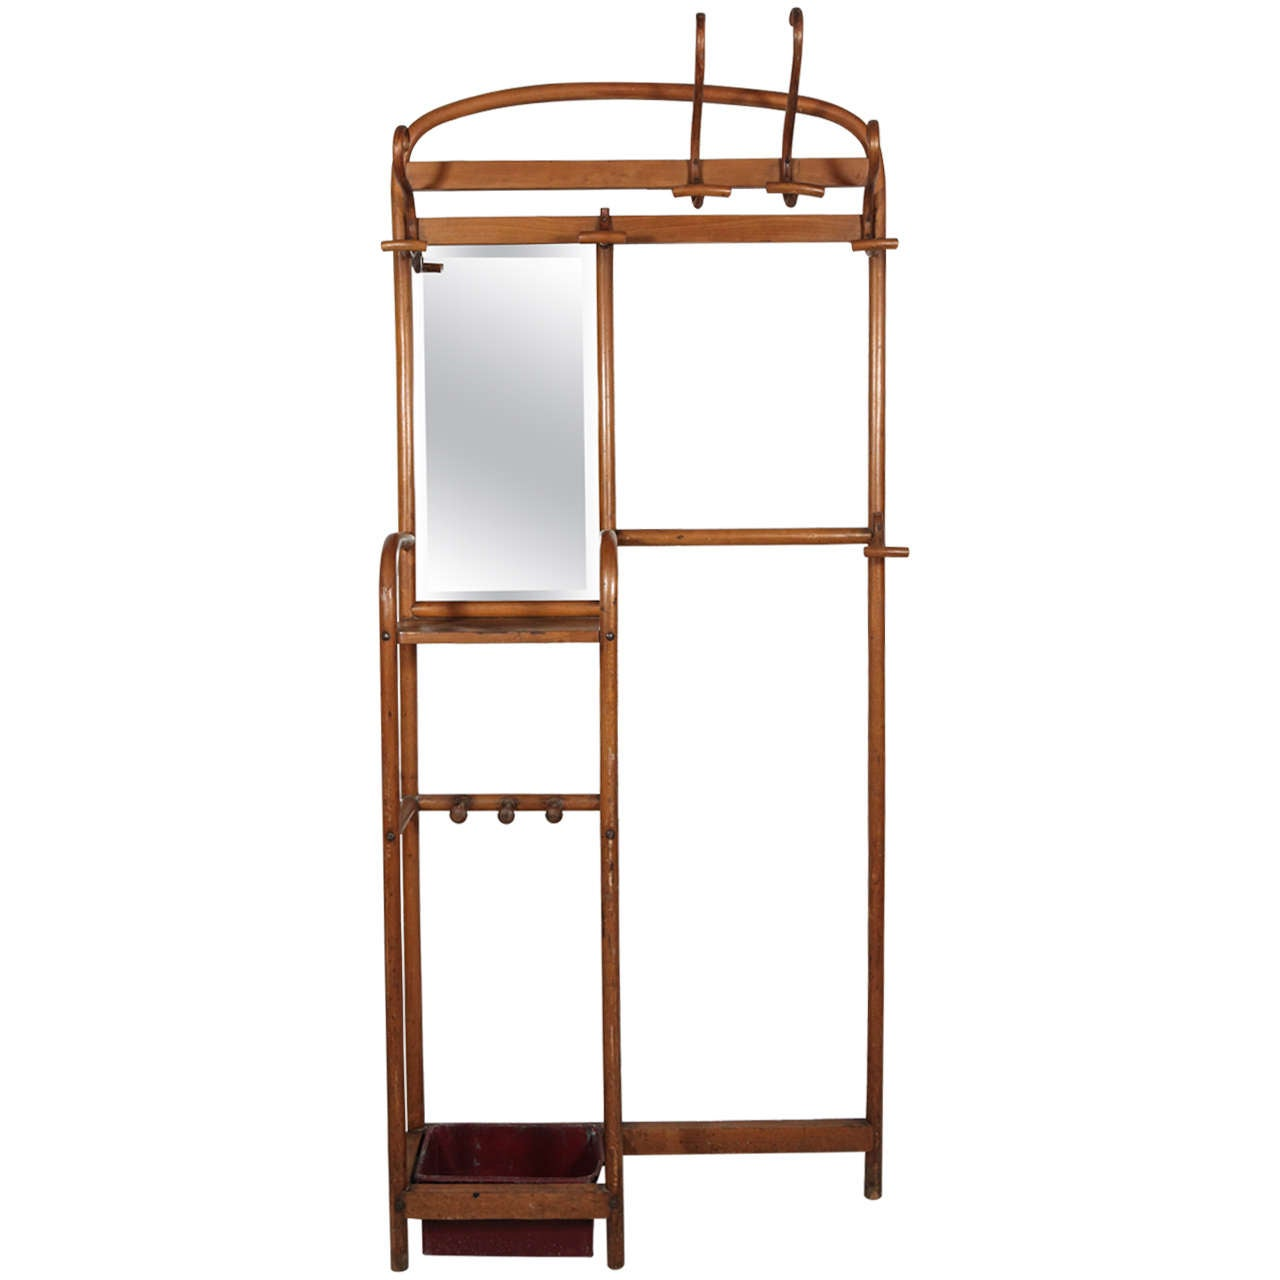 Bentwood Thonet Coat Rack And Umbrella Stand With Mirror For Sale